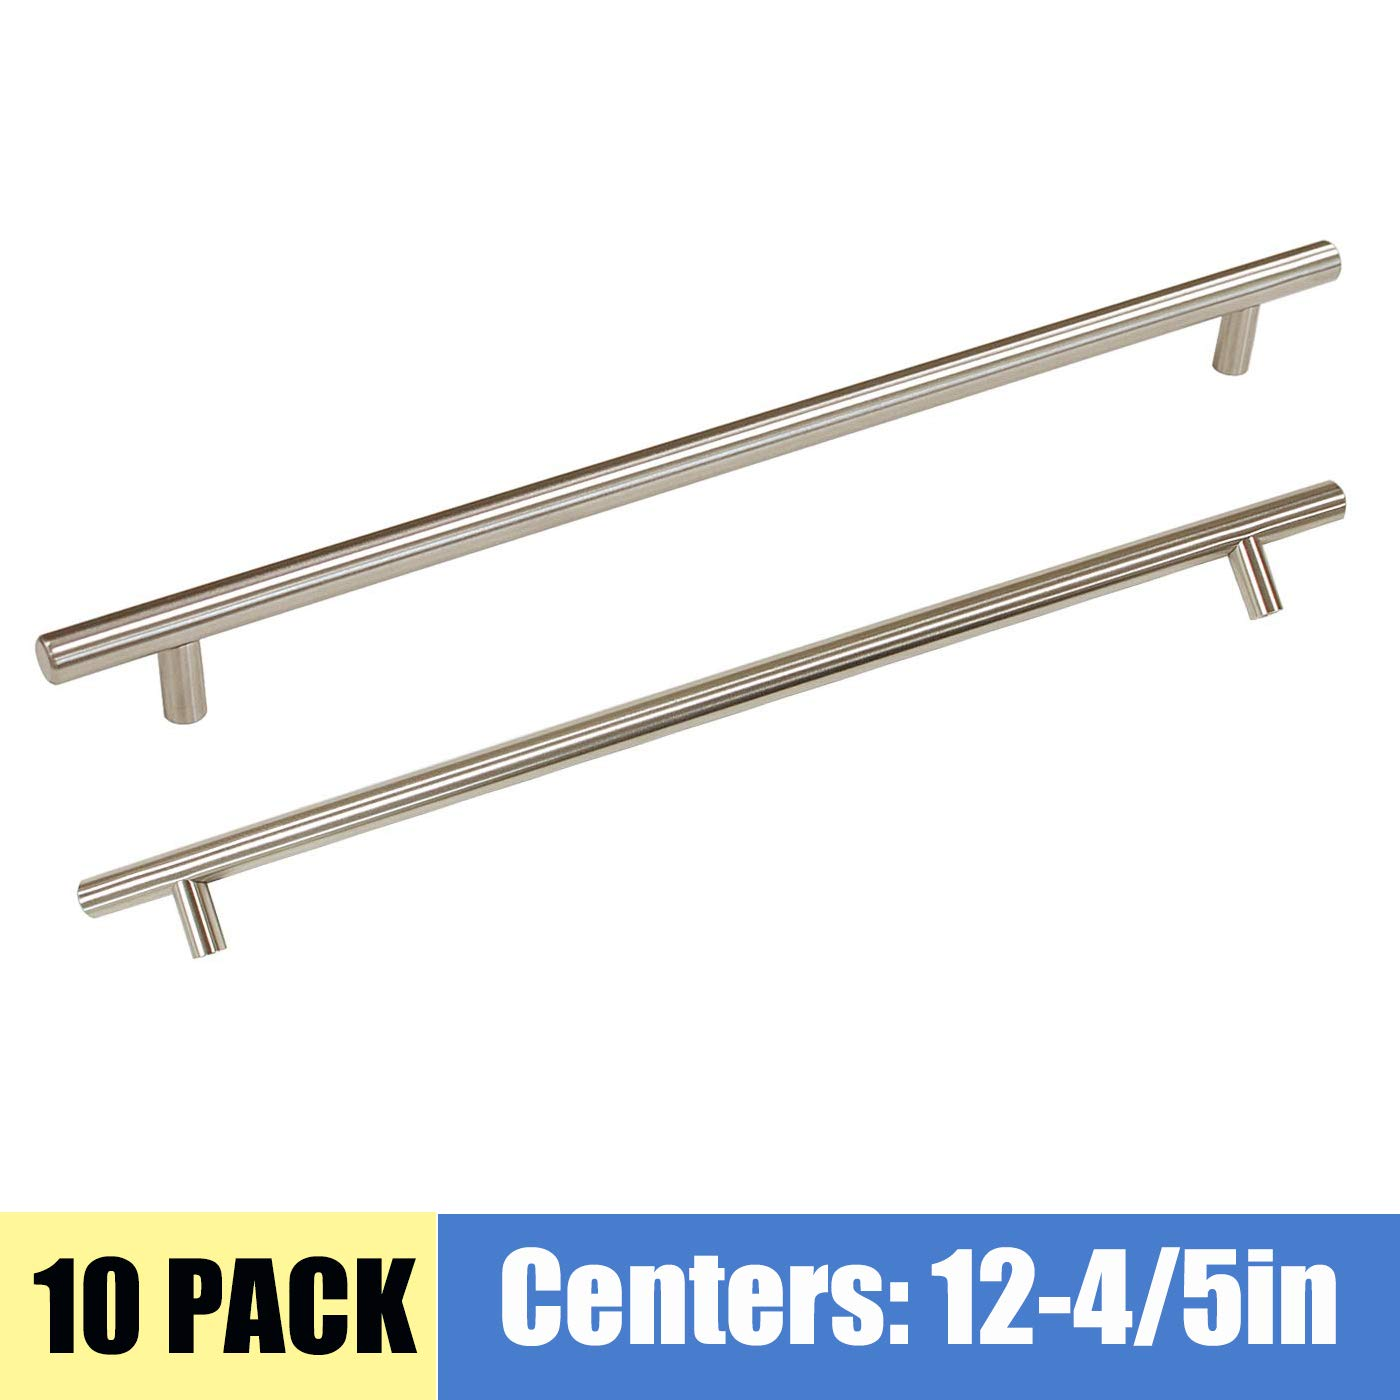 12 Pack T Bar Stainless Steel 3 Hole to Hole Cabinet Modern Style Pulls Brushed Nickel Finish Dresser Wardrobe Drawer Handles